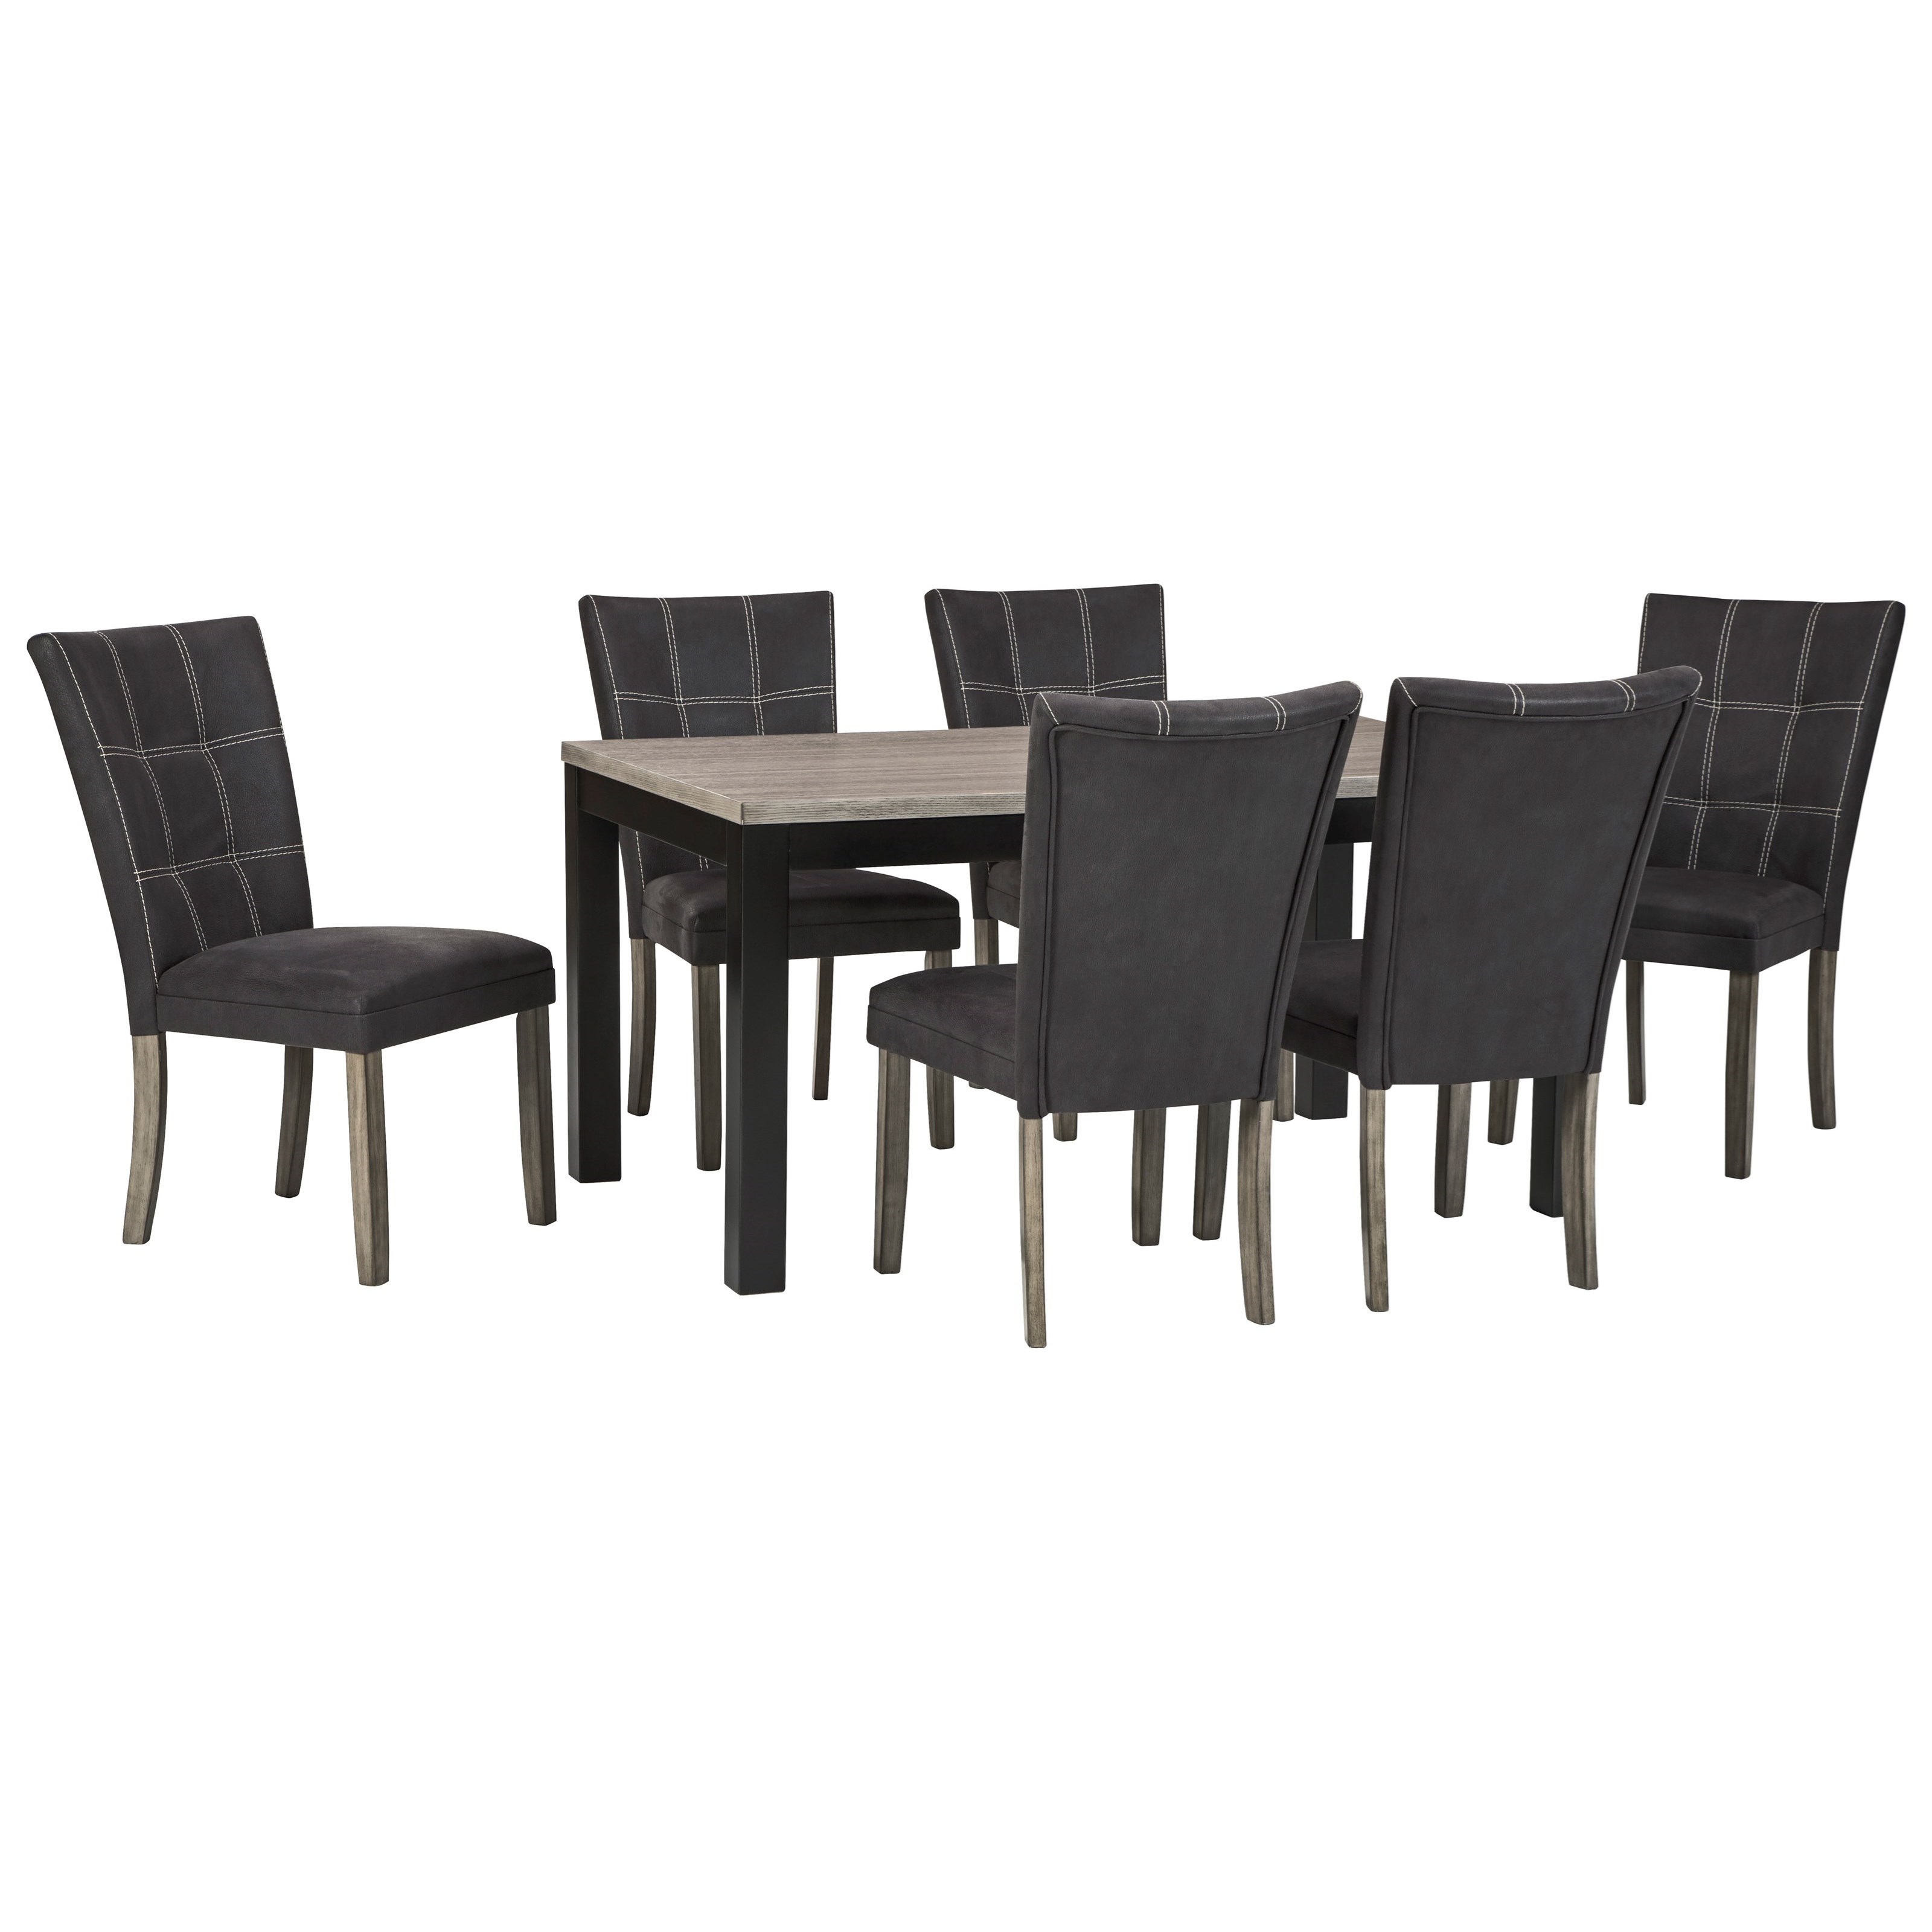 Dontally 7-Piece Rectangular Dining Table Set by Benchcraft at Value City Furniture